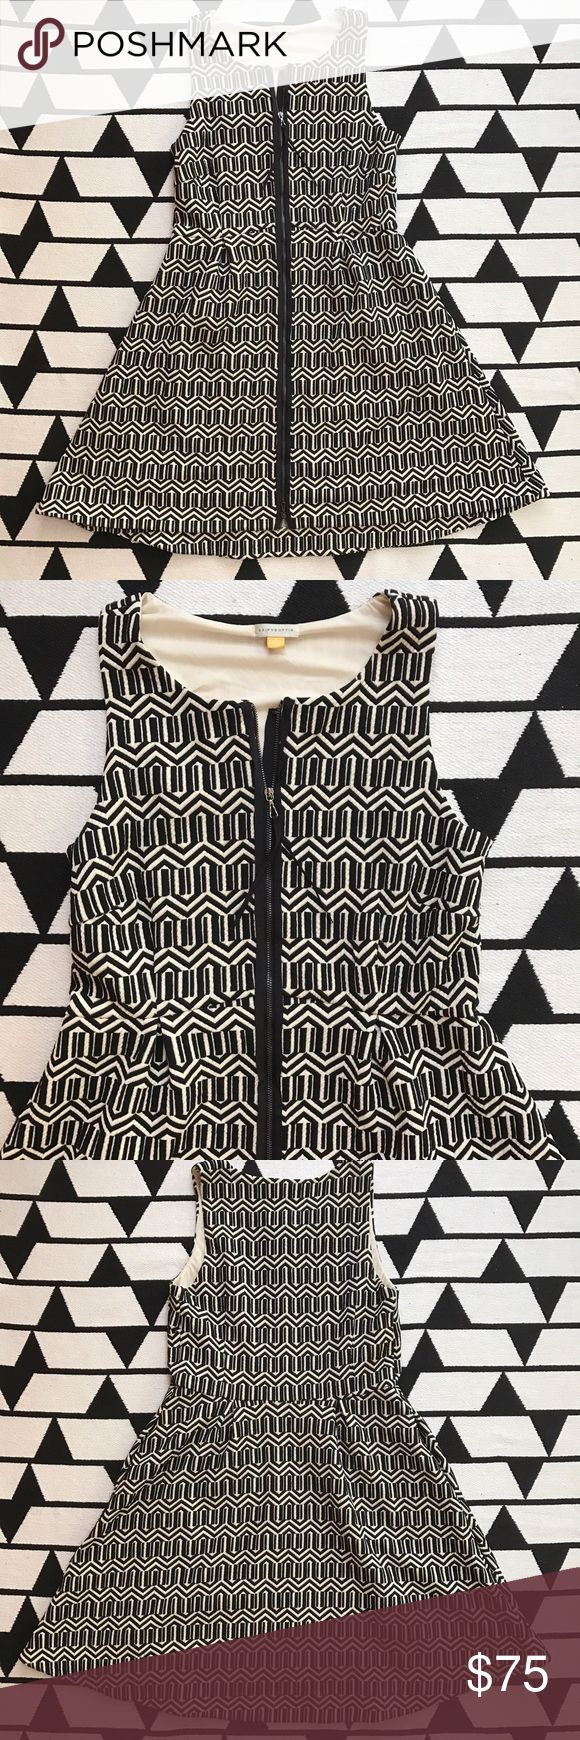 """Anthropologie Black & White Tonnelle Dress By Anthropologie brand Leifsdottir. Textured fit and Flare style. Black and White. Gently used, like new condition with no flaws. Body Length 34.5"""". Bust from armpit to armpit 16"""" (32"""" doubled). Full zip front. Fully lined. Exterior: polyester/rayon/spandex. Lining: polyester. *No trades or modeling. Offers welcomed. Anthropologie Dresses"""